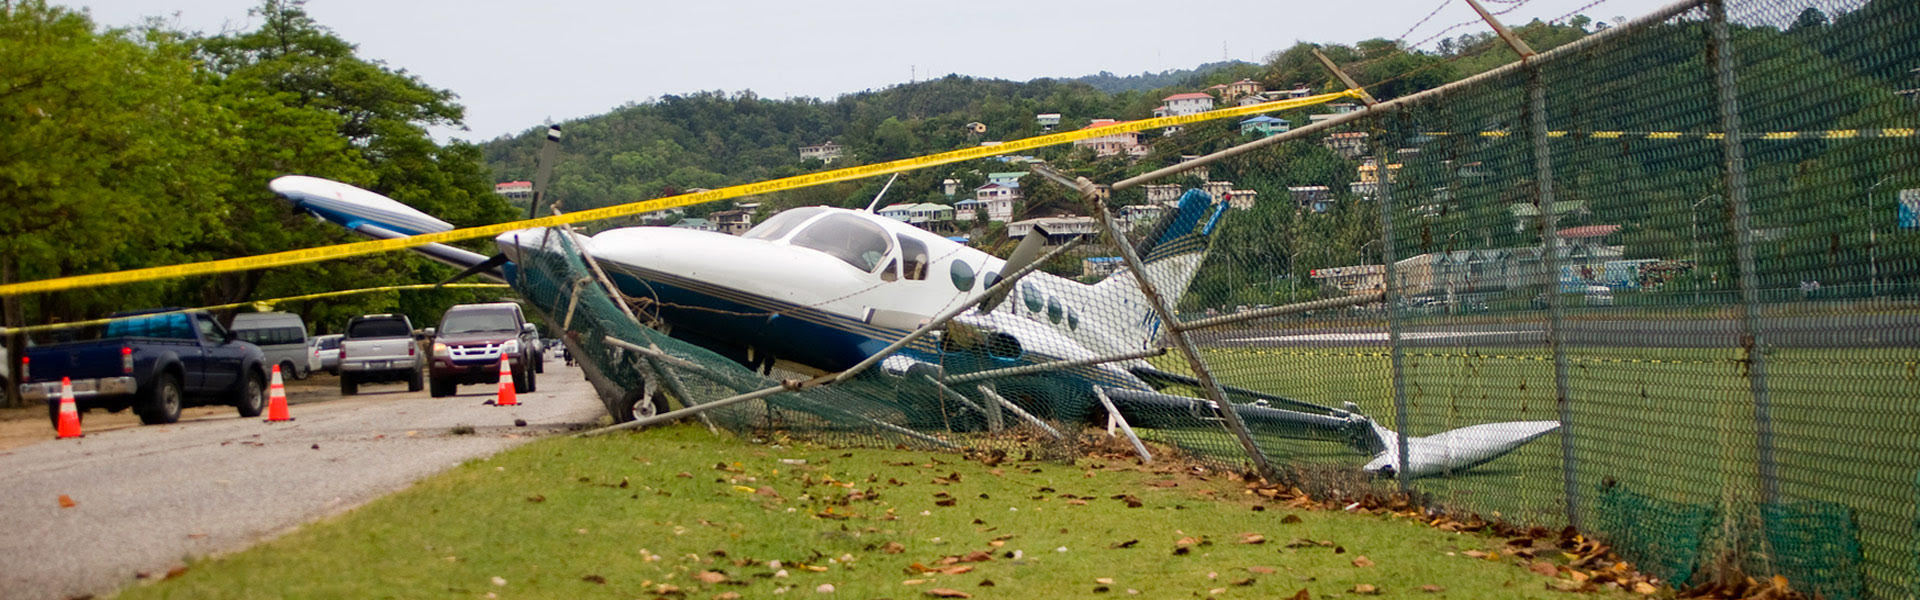 Scene of an aircraft accident